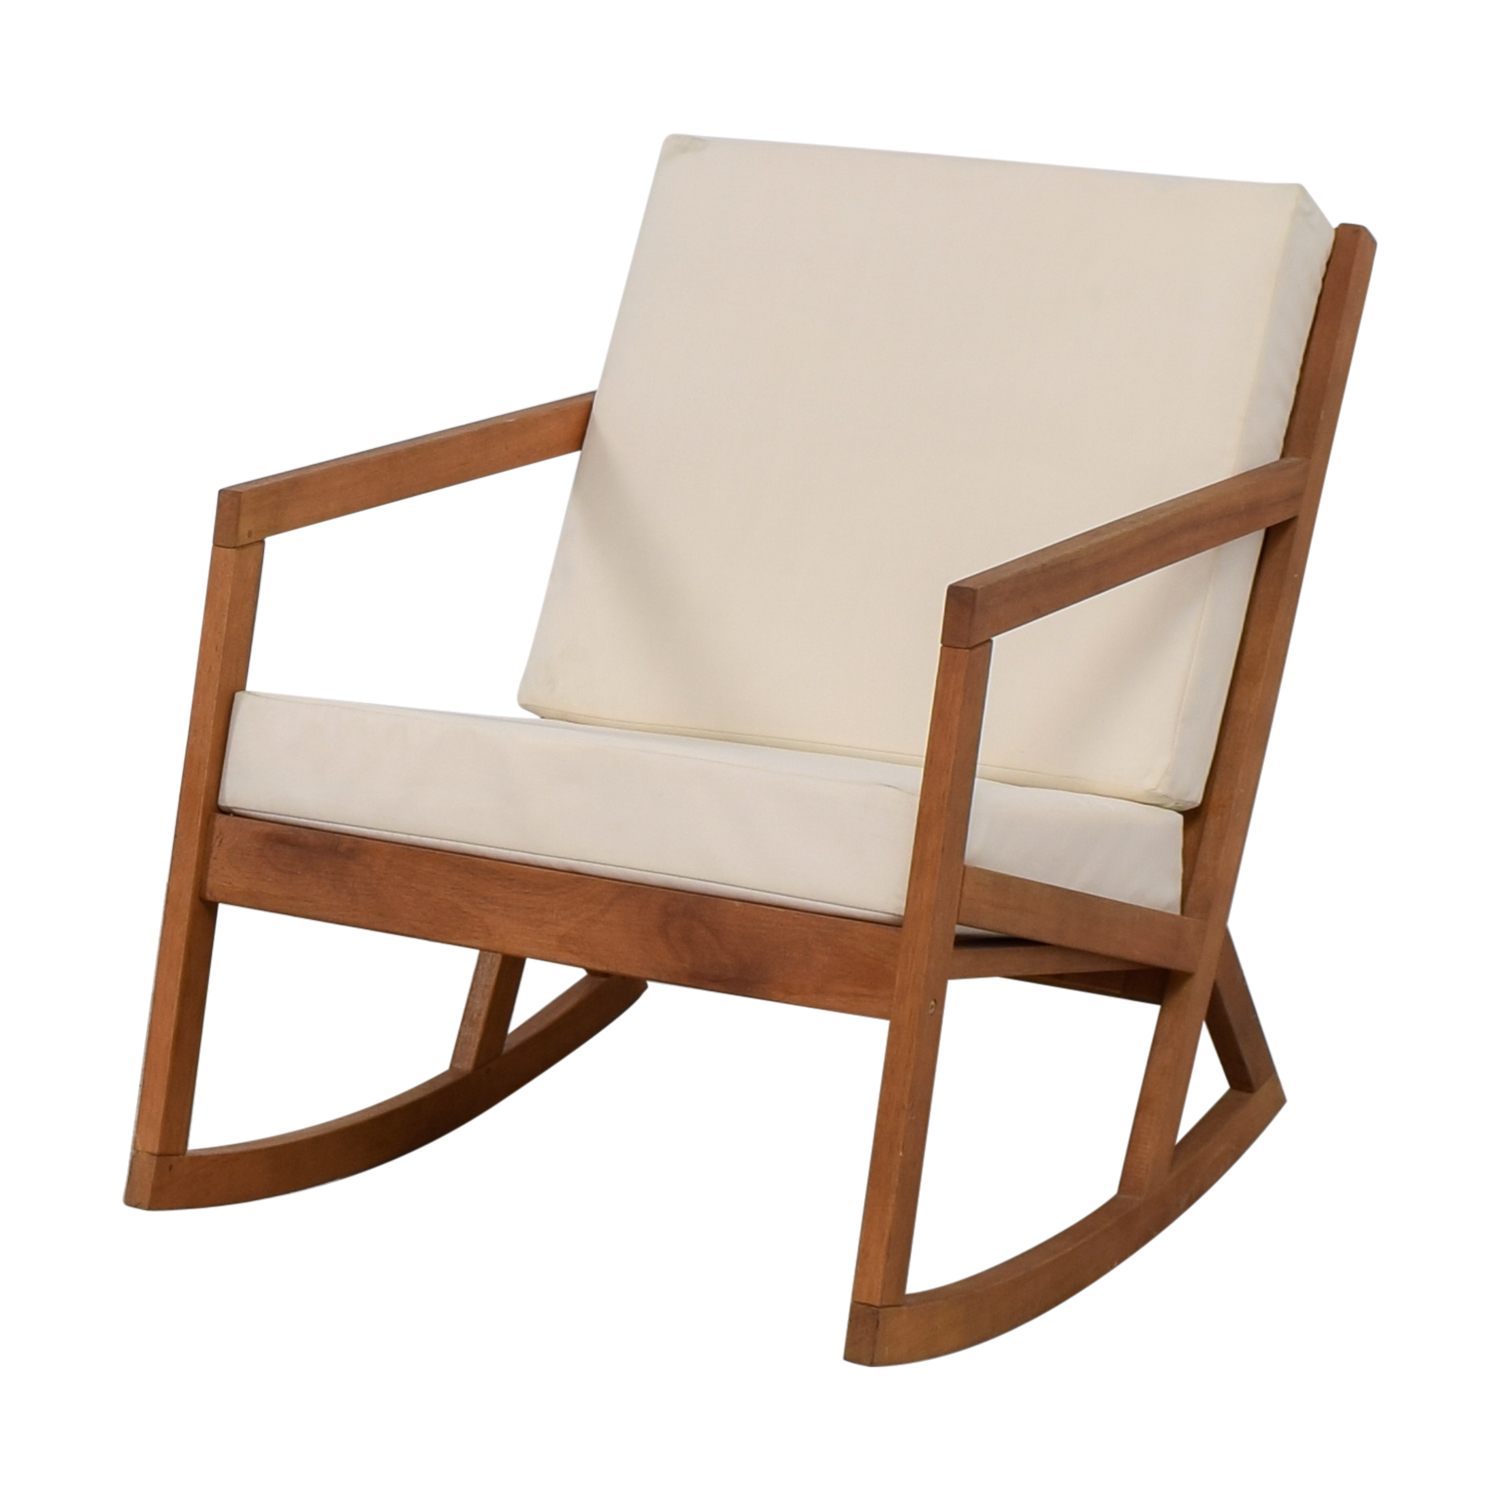 Safavieh Safavieh White Upholstered Wood Rocking Chair brown/white